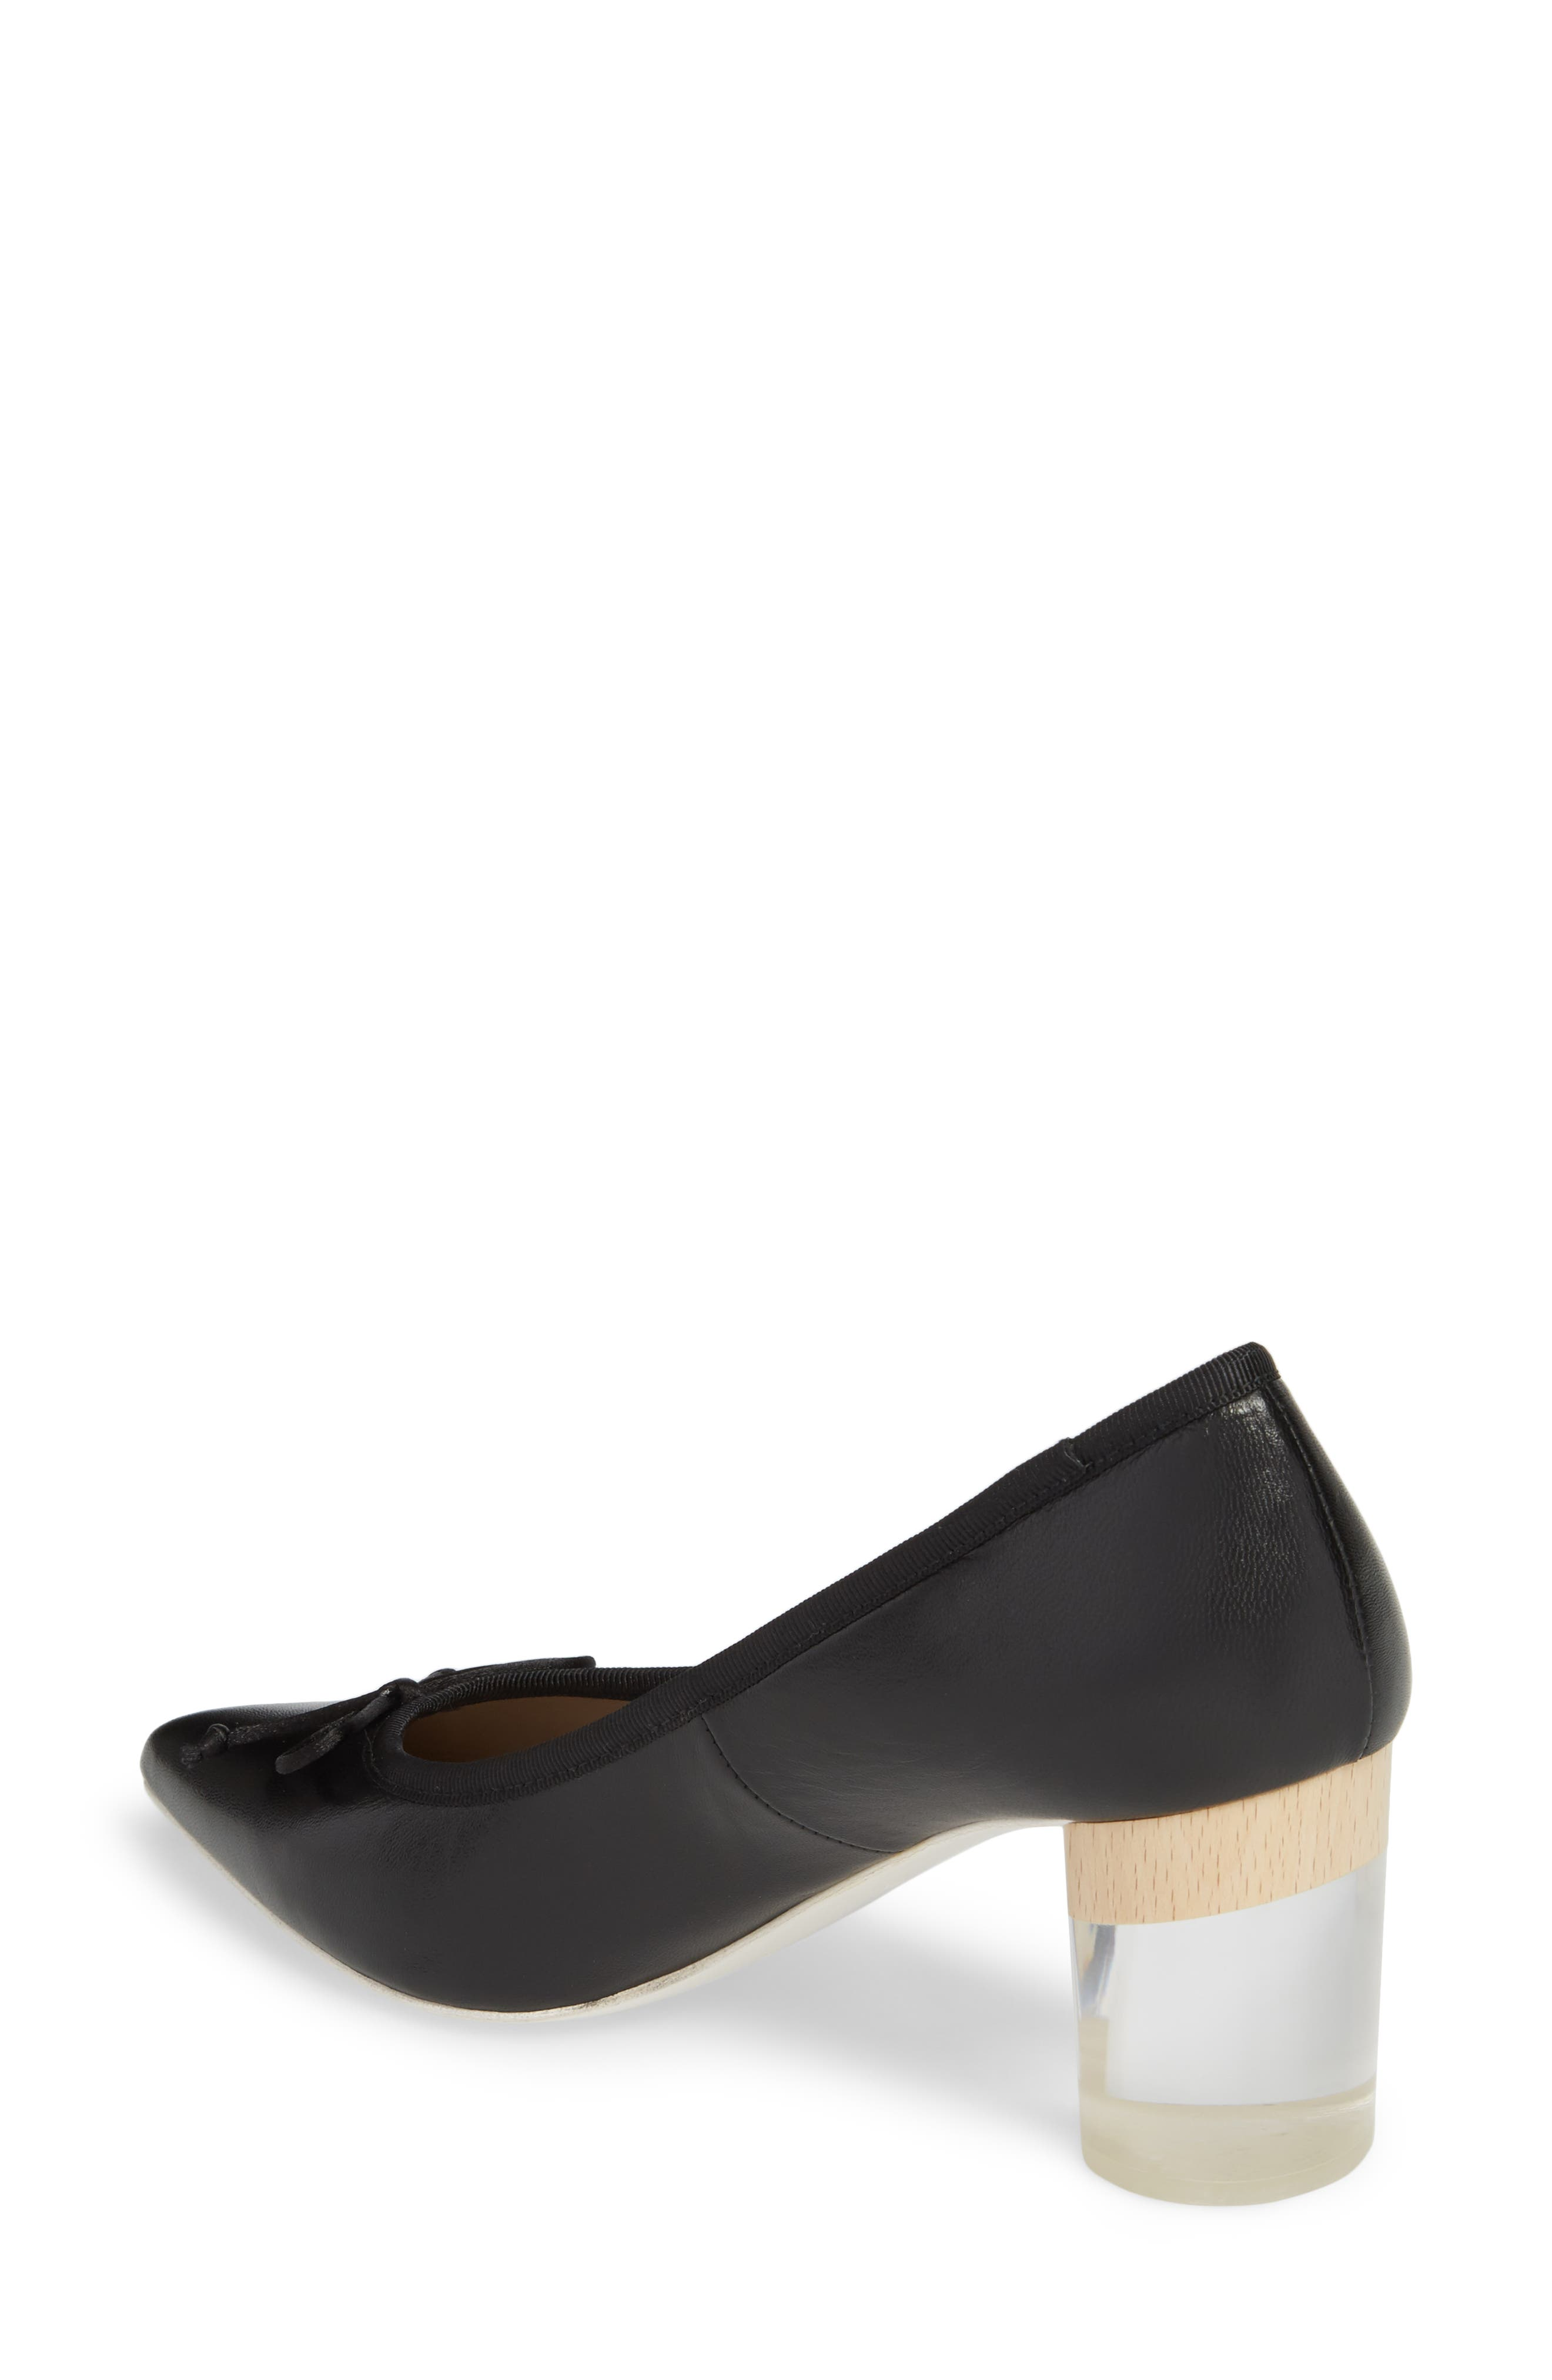 Asia Pointy Toe Pump,                             Alternate thumbnail 2, color,                             Black Leather